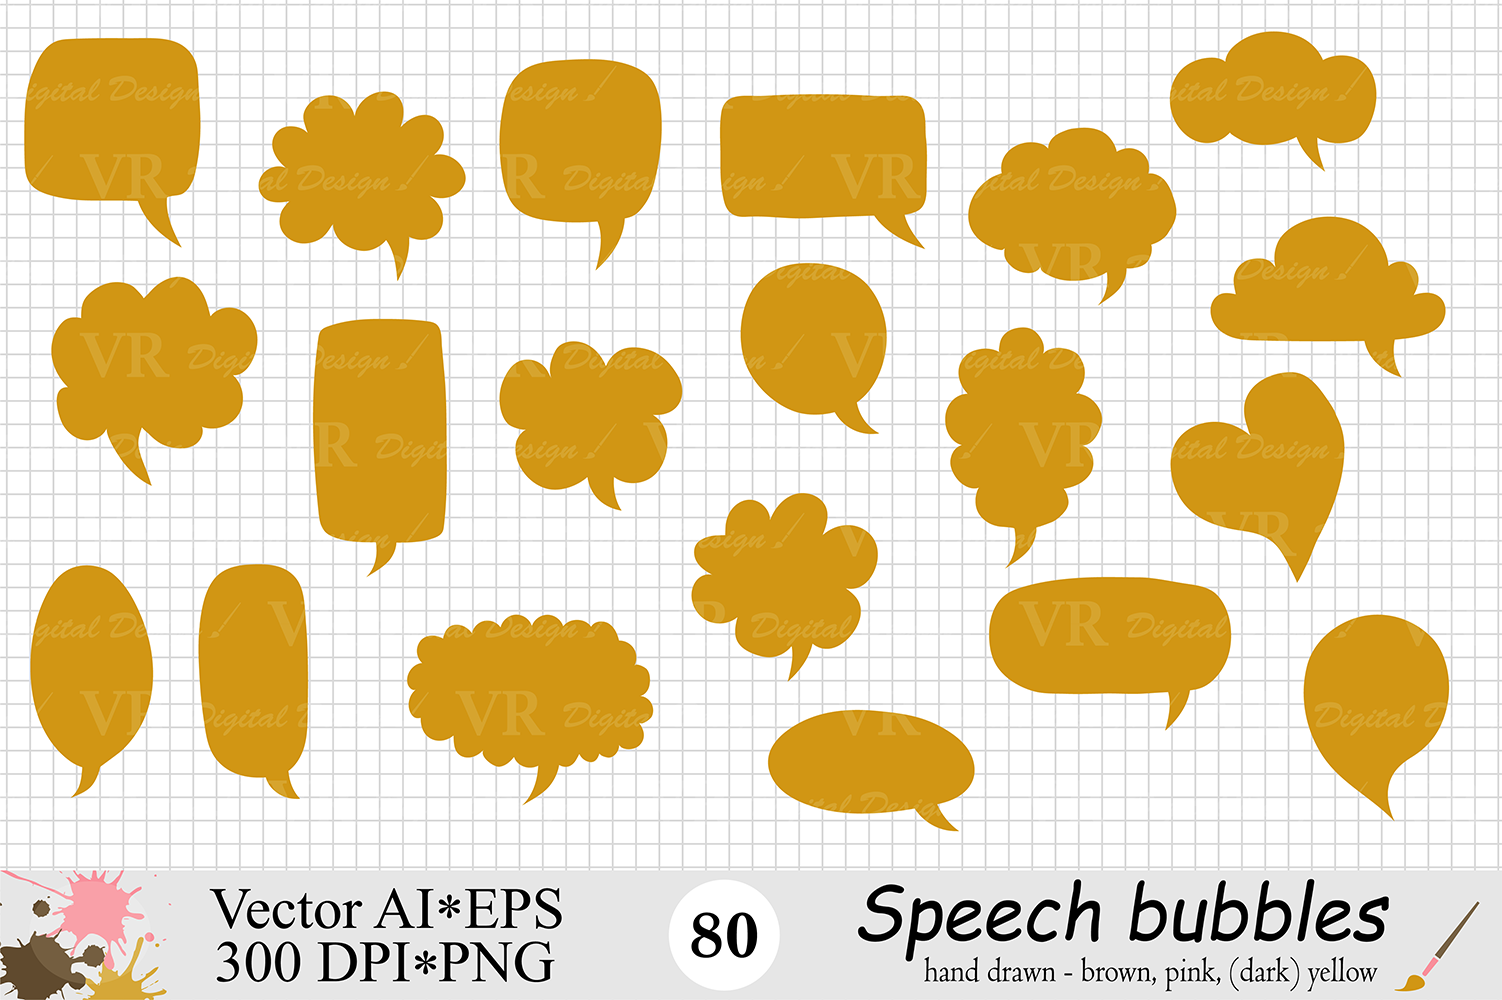 Speech Bubbles Clipart / Chat Bubbles / Hand drawn Text bubbles / Brown, Pink, Yellow - Vector example image 4